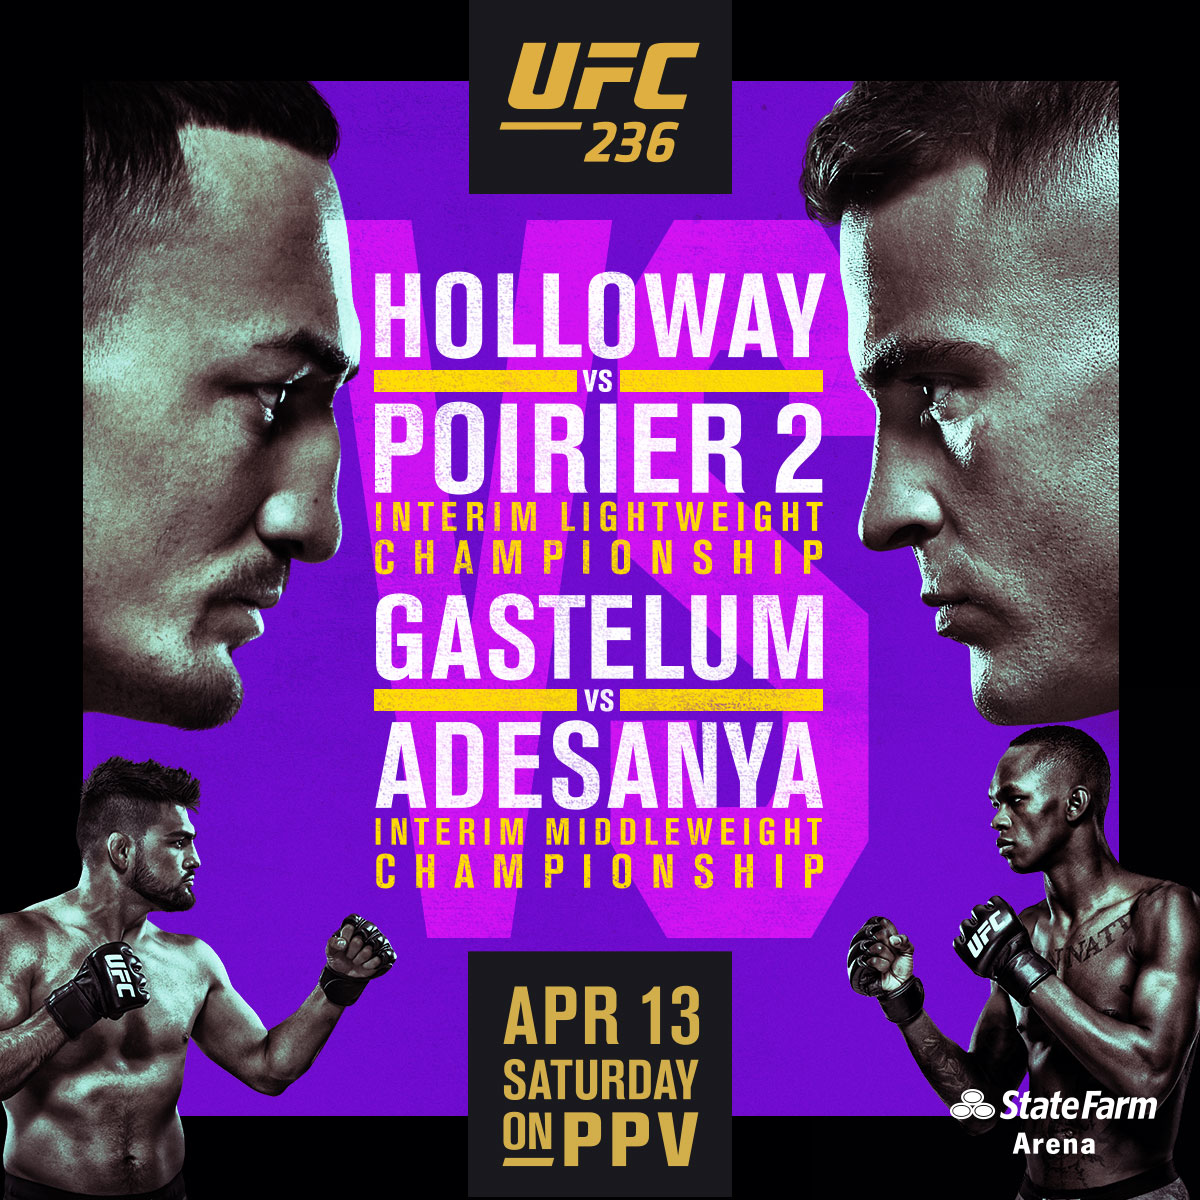 UFC 236 Holloway vs Poirier